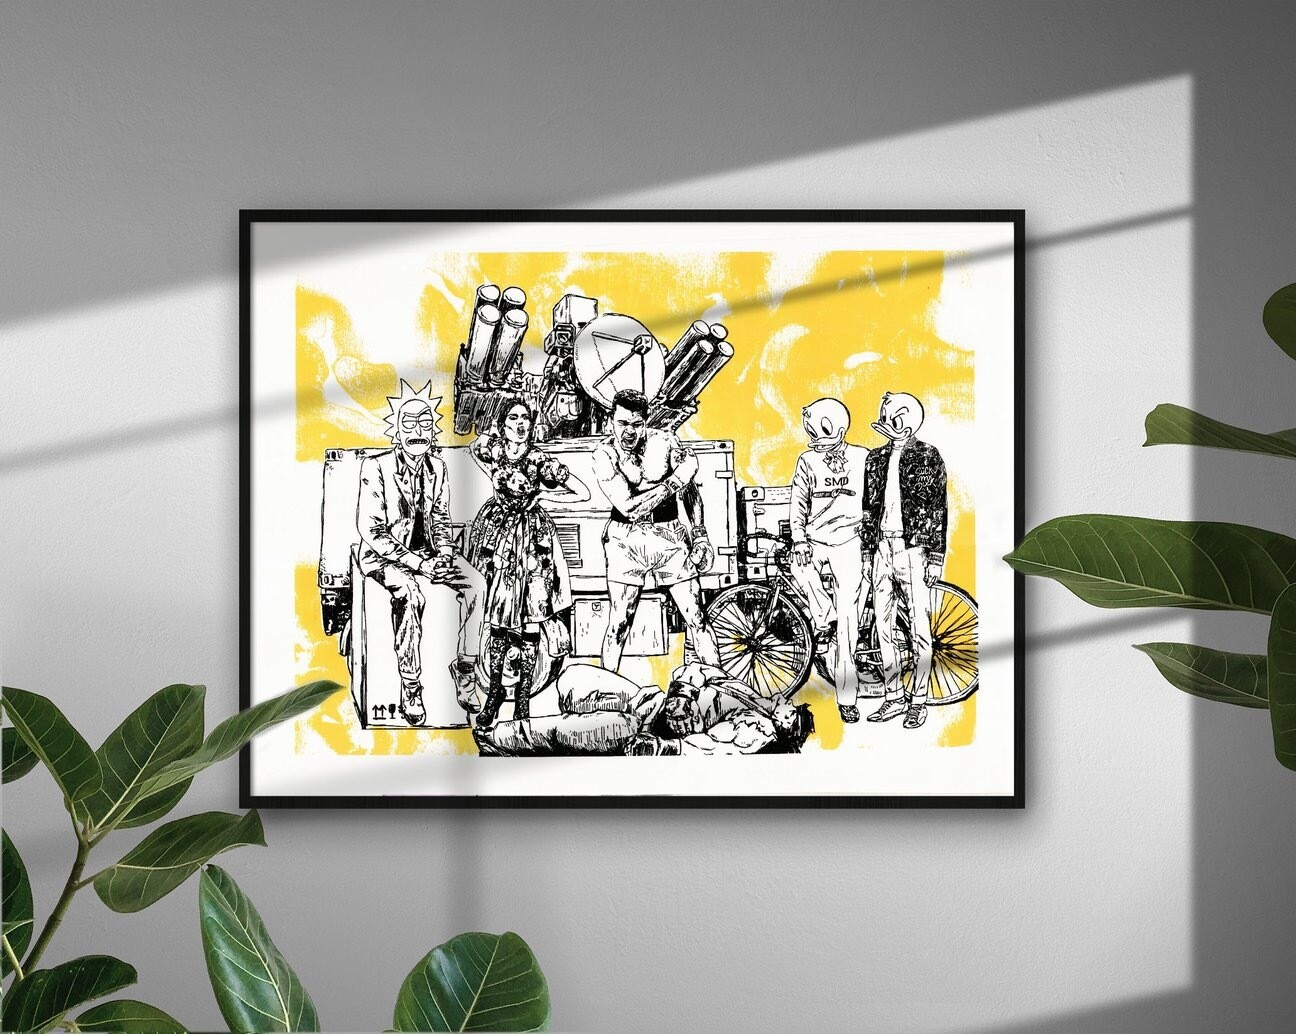 Boxing Club Art Print - Signed - Numbered To 10